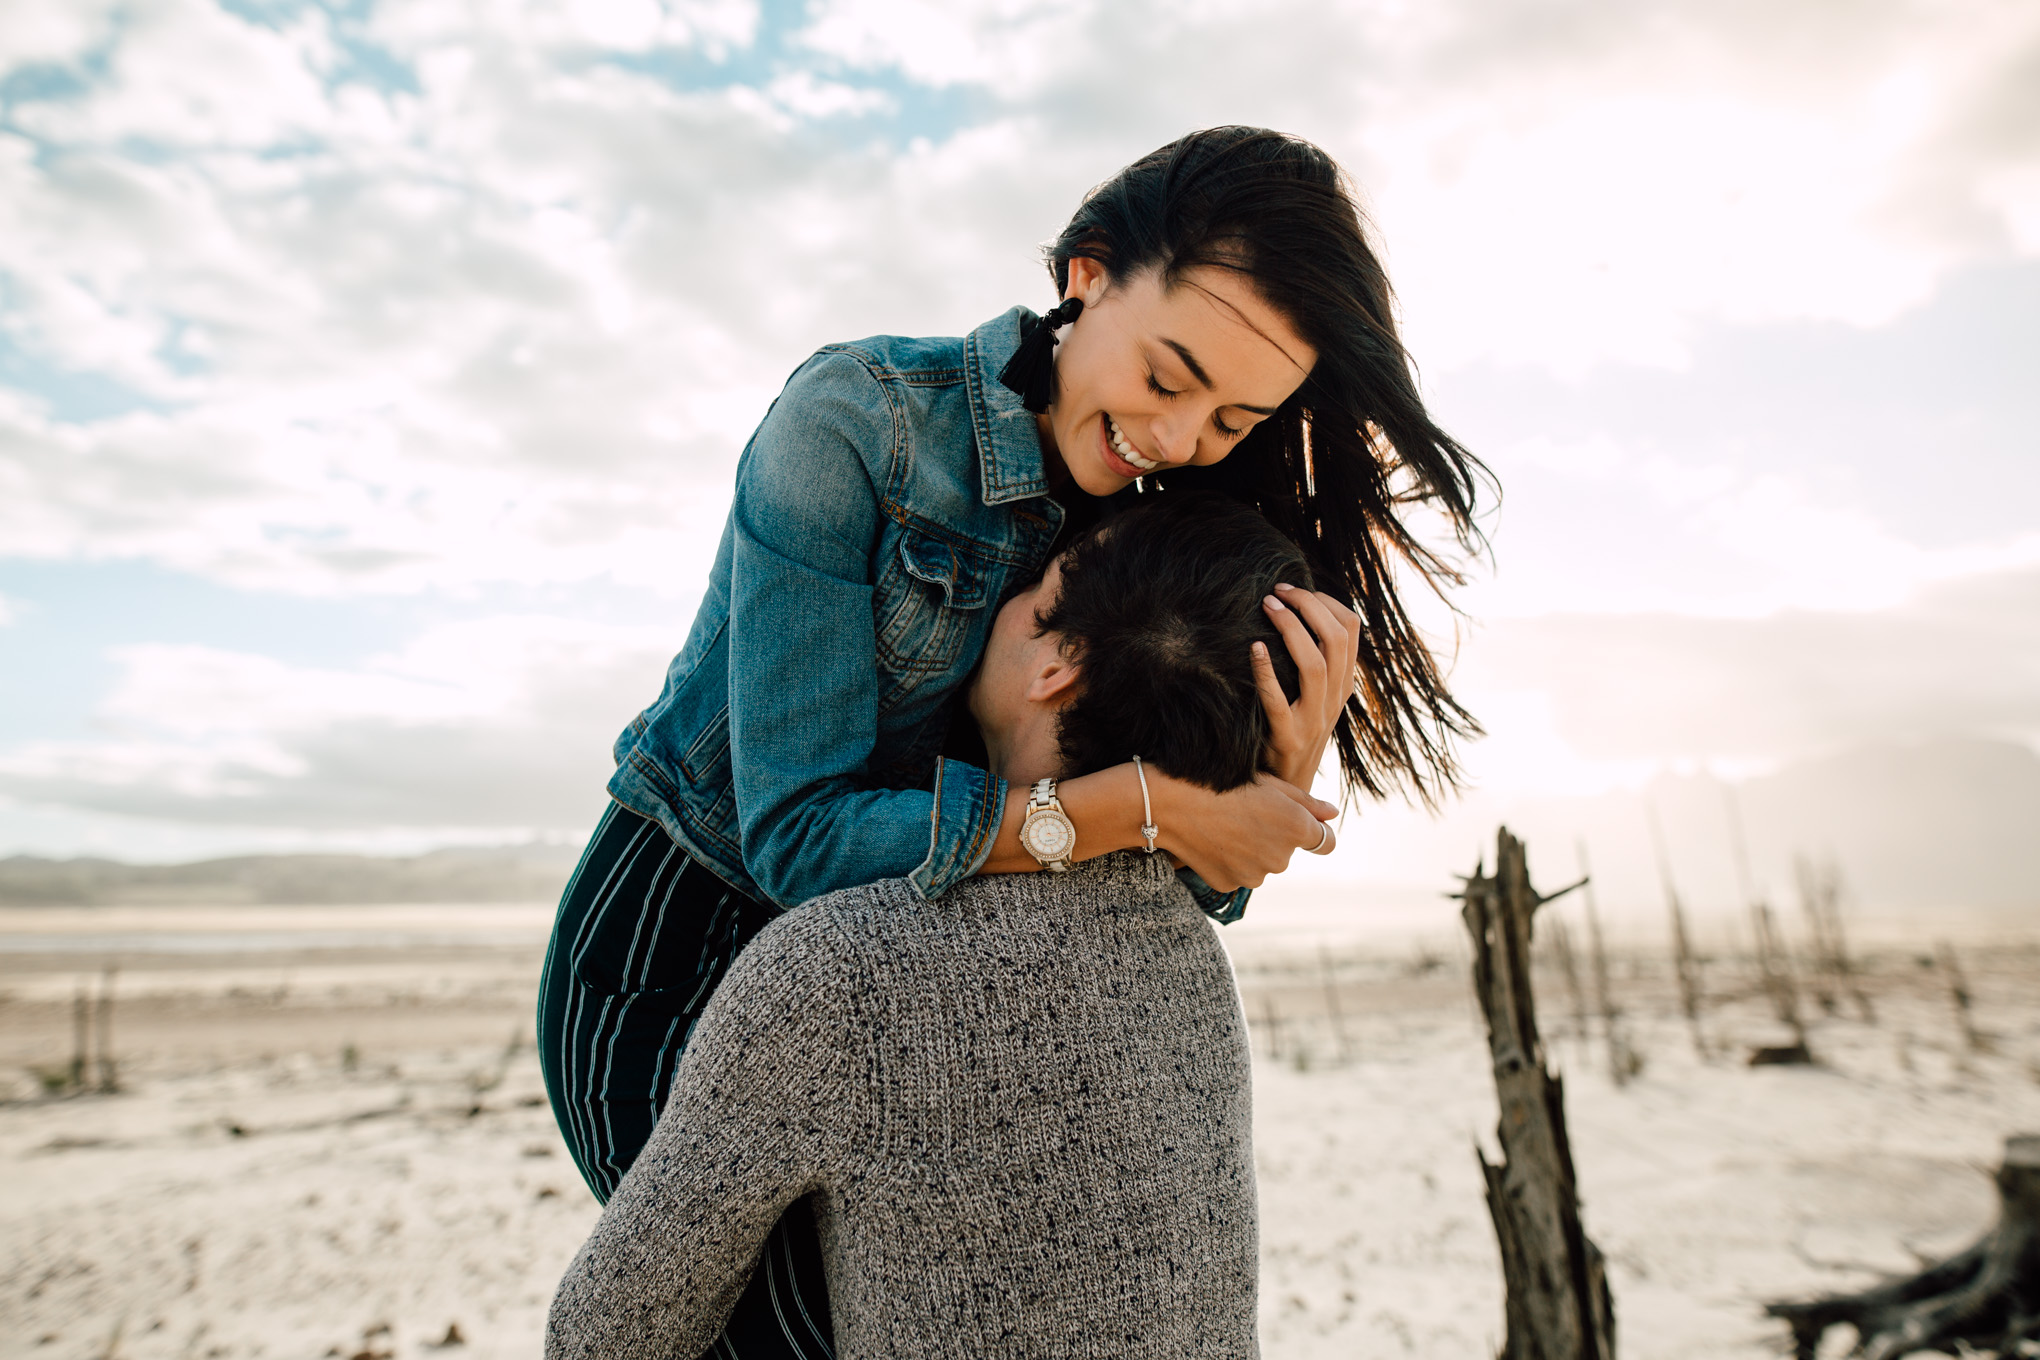 Capetown-South-Africa-Engagement-Pia-Anna-Christian-Wedding-Photography-4.jpg